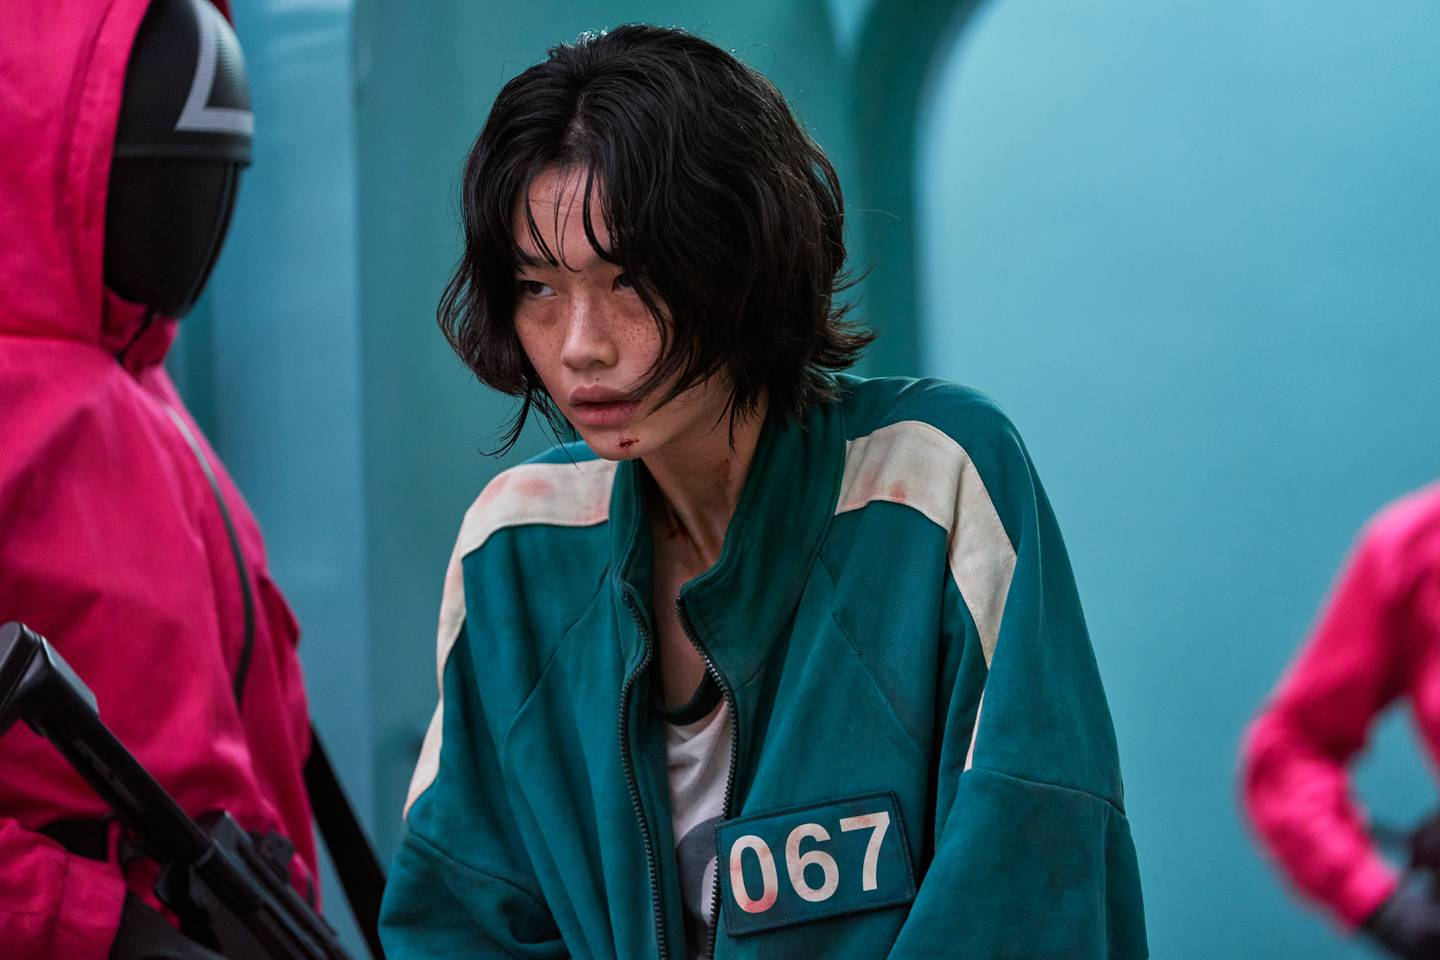 1632120920 397 The Squid Game the deadly Korean drama that captivates and